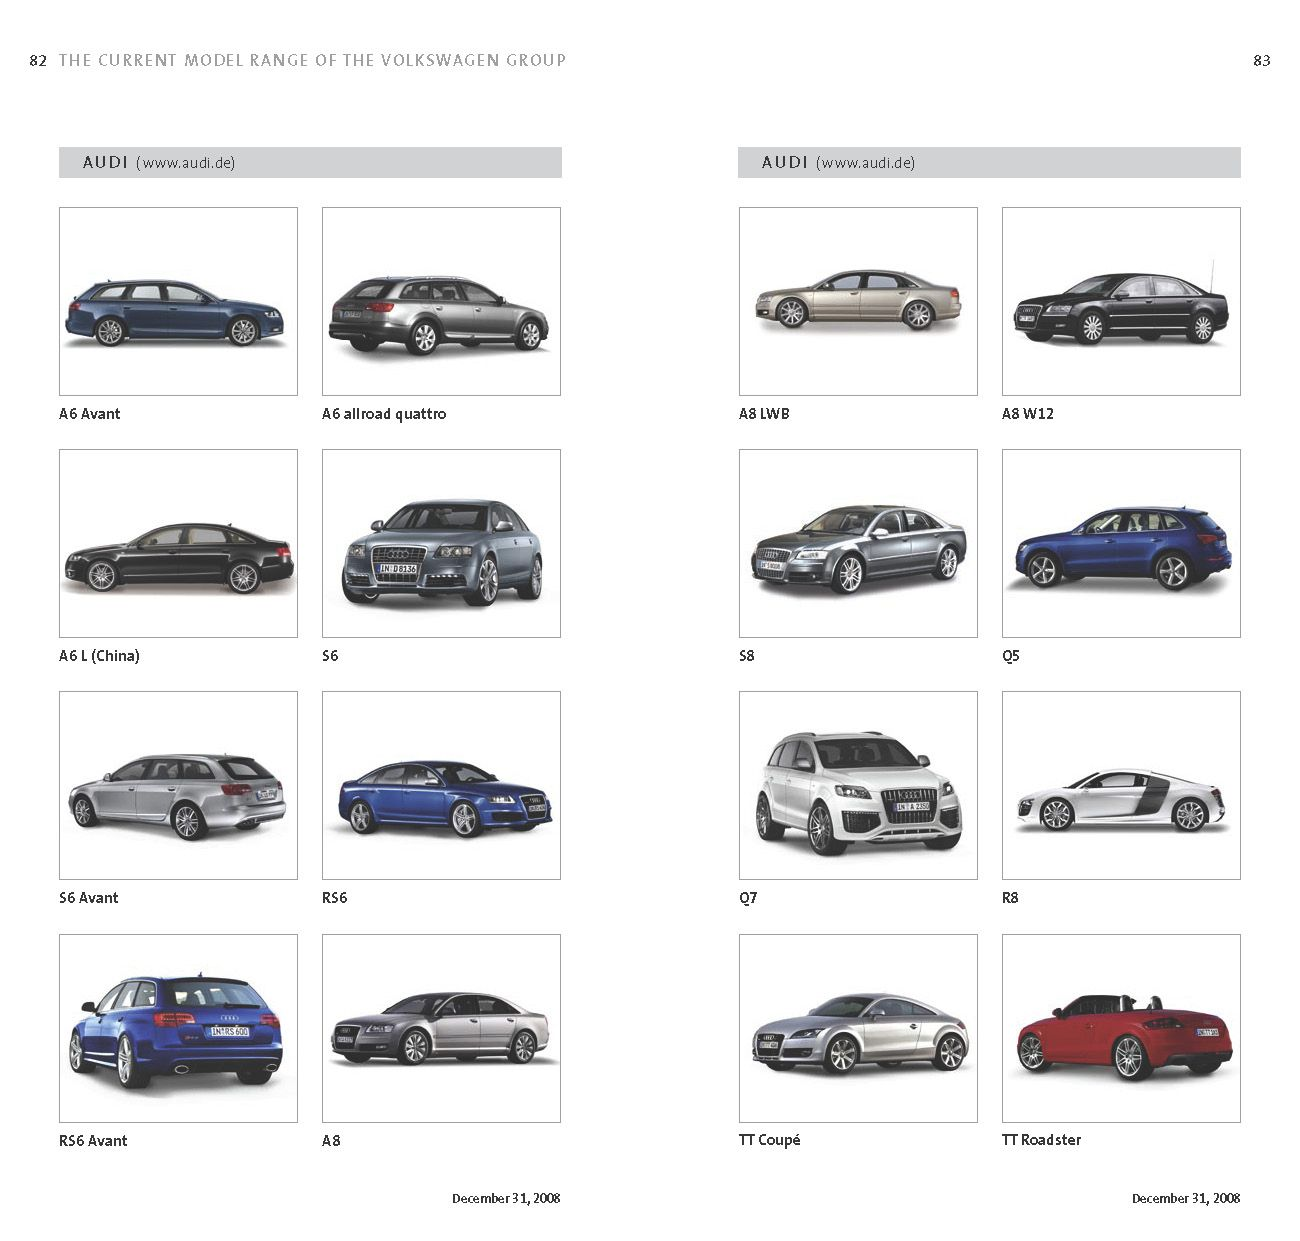 Complete List of VW Vehicles